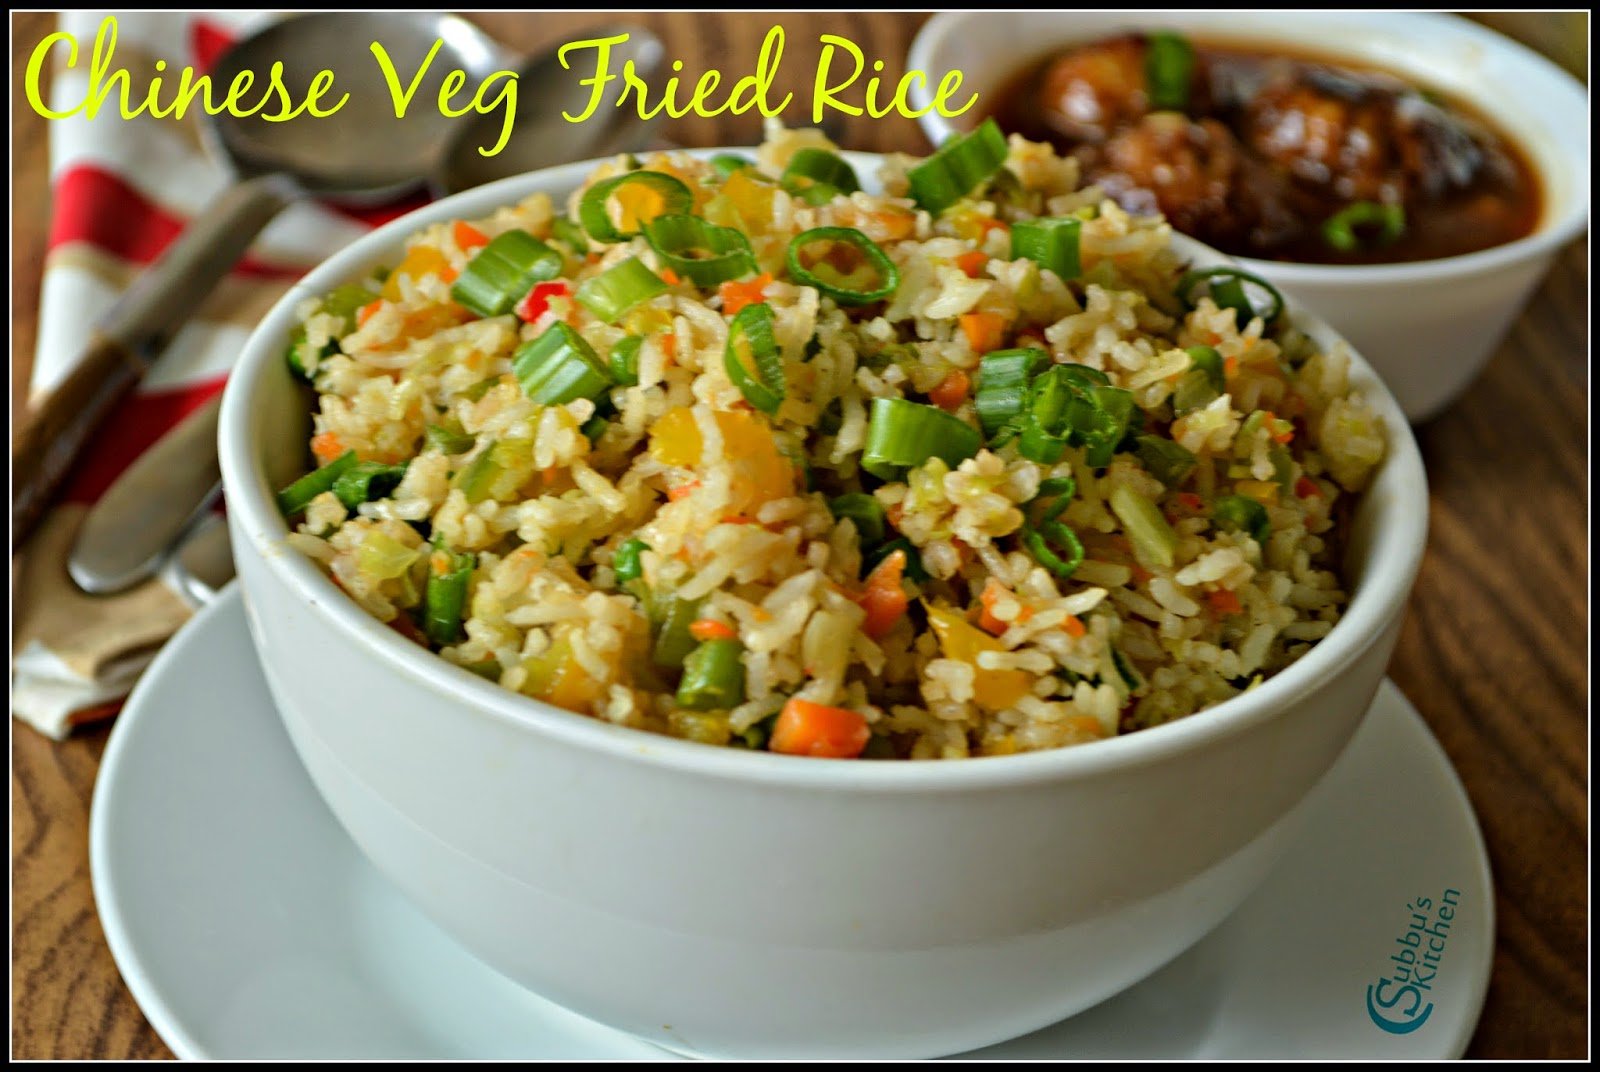 Chinese Vegetable Fried Rice Recipe